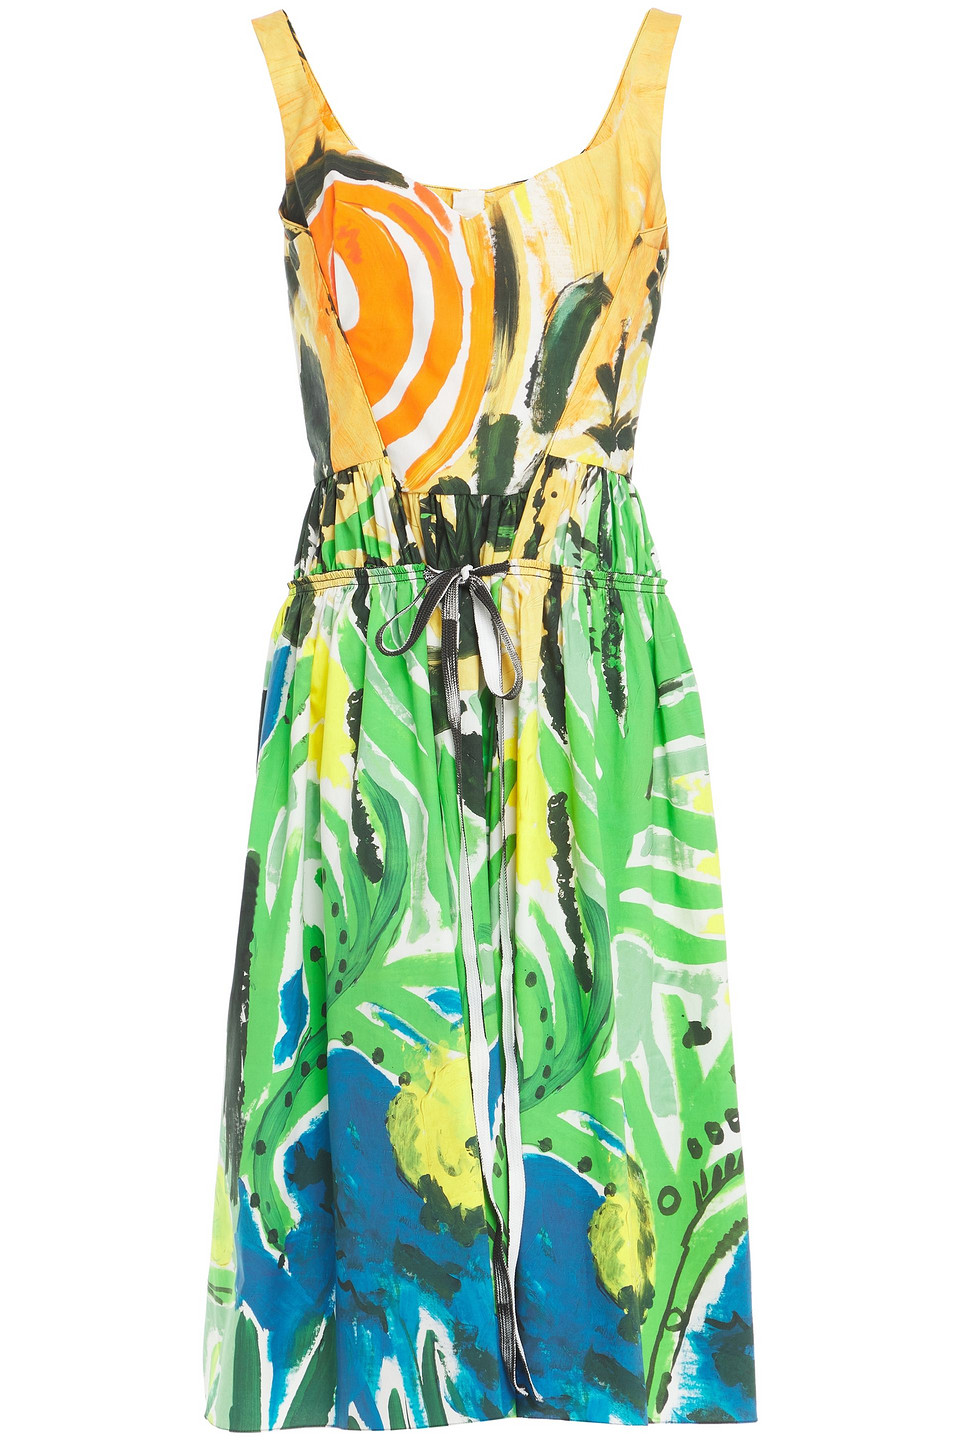 Marni | Marni Woman Gathered Printed Cotton-poplin Midi Dress Green | Clouty